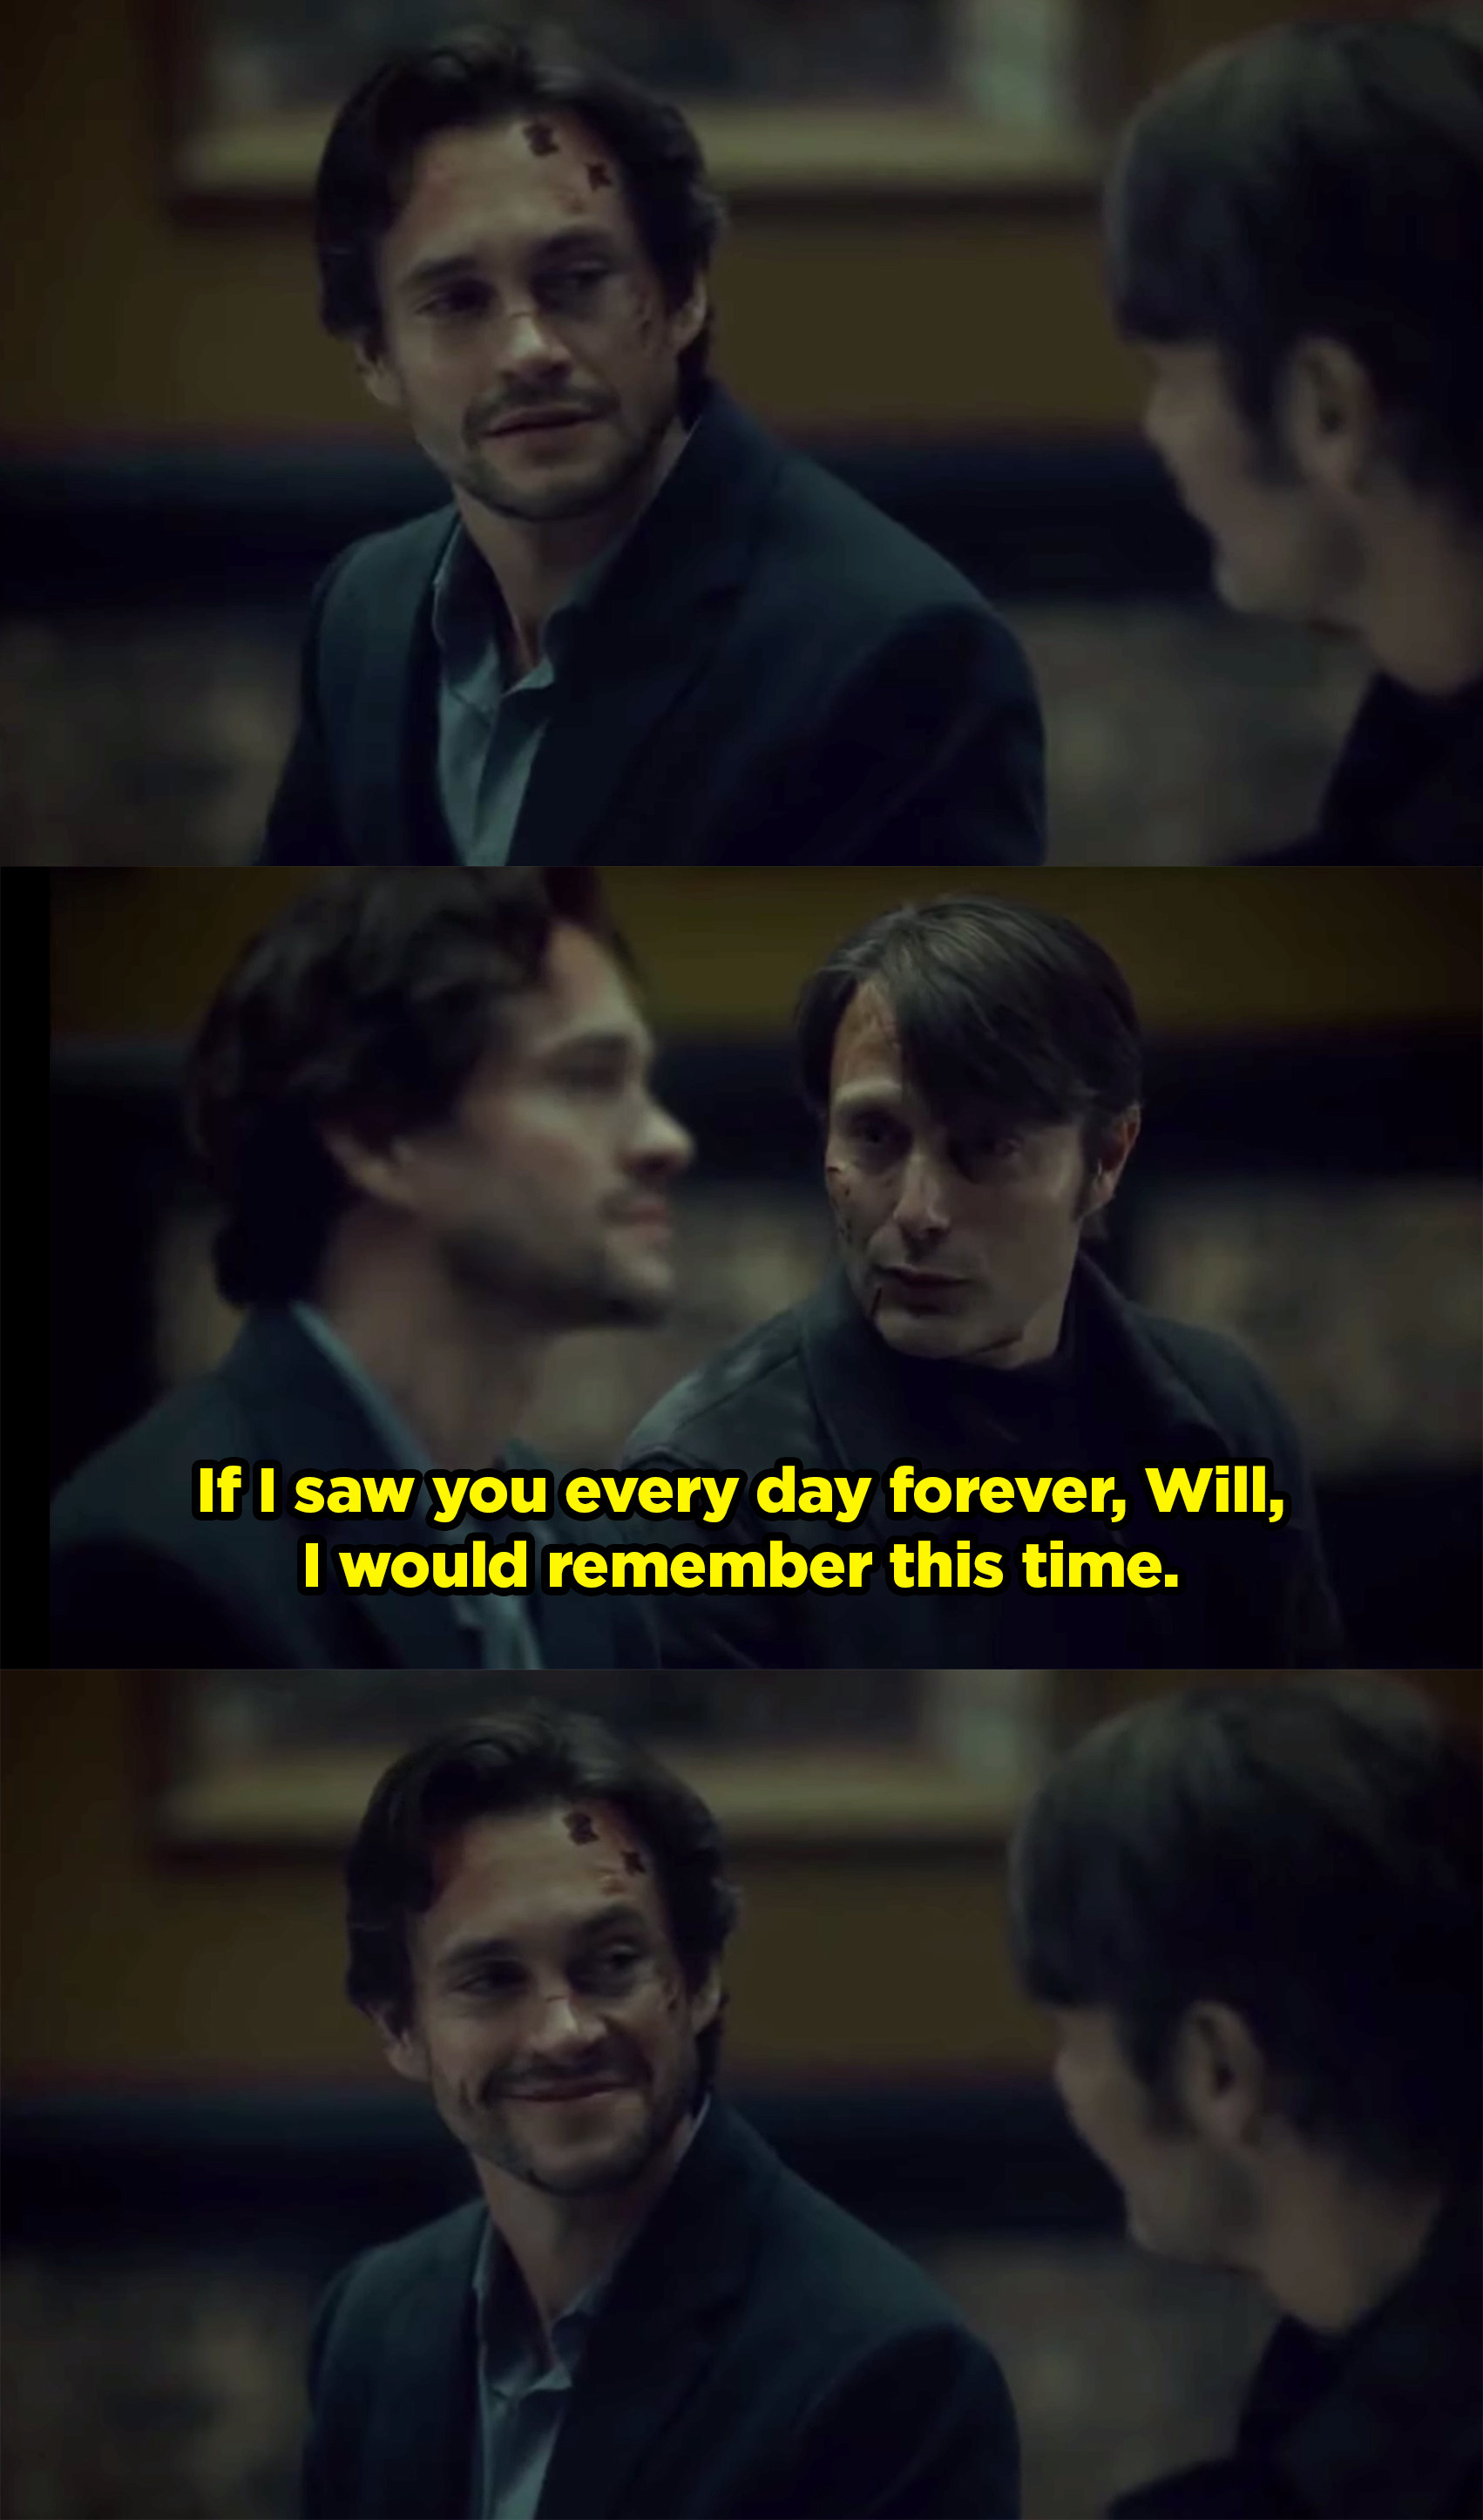 Hannibal telling Will that even if he saw him every single day for the rest of his life, he would always remember this moment.